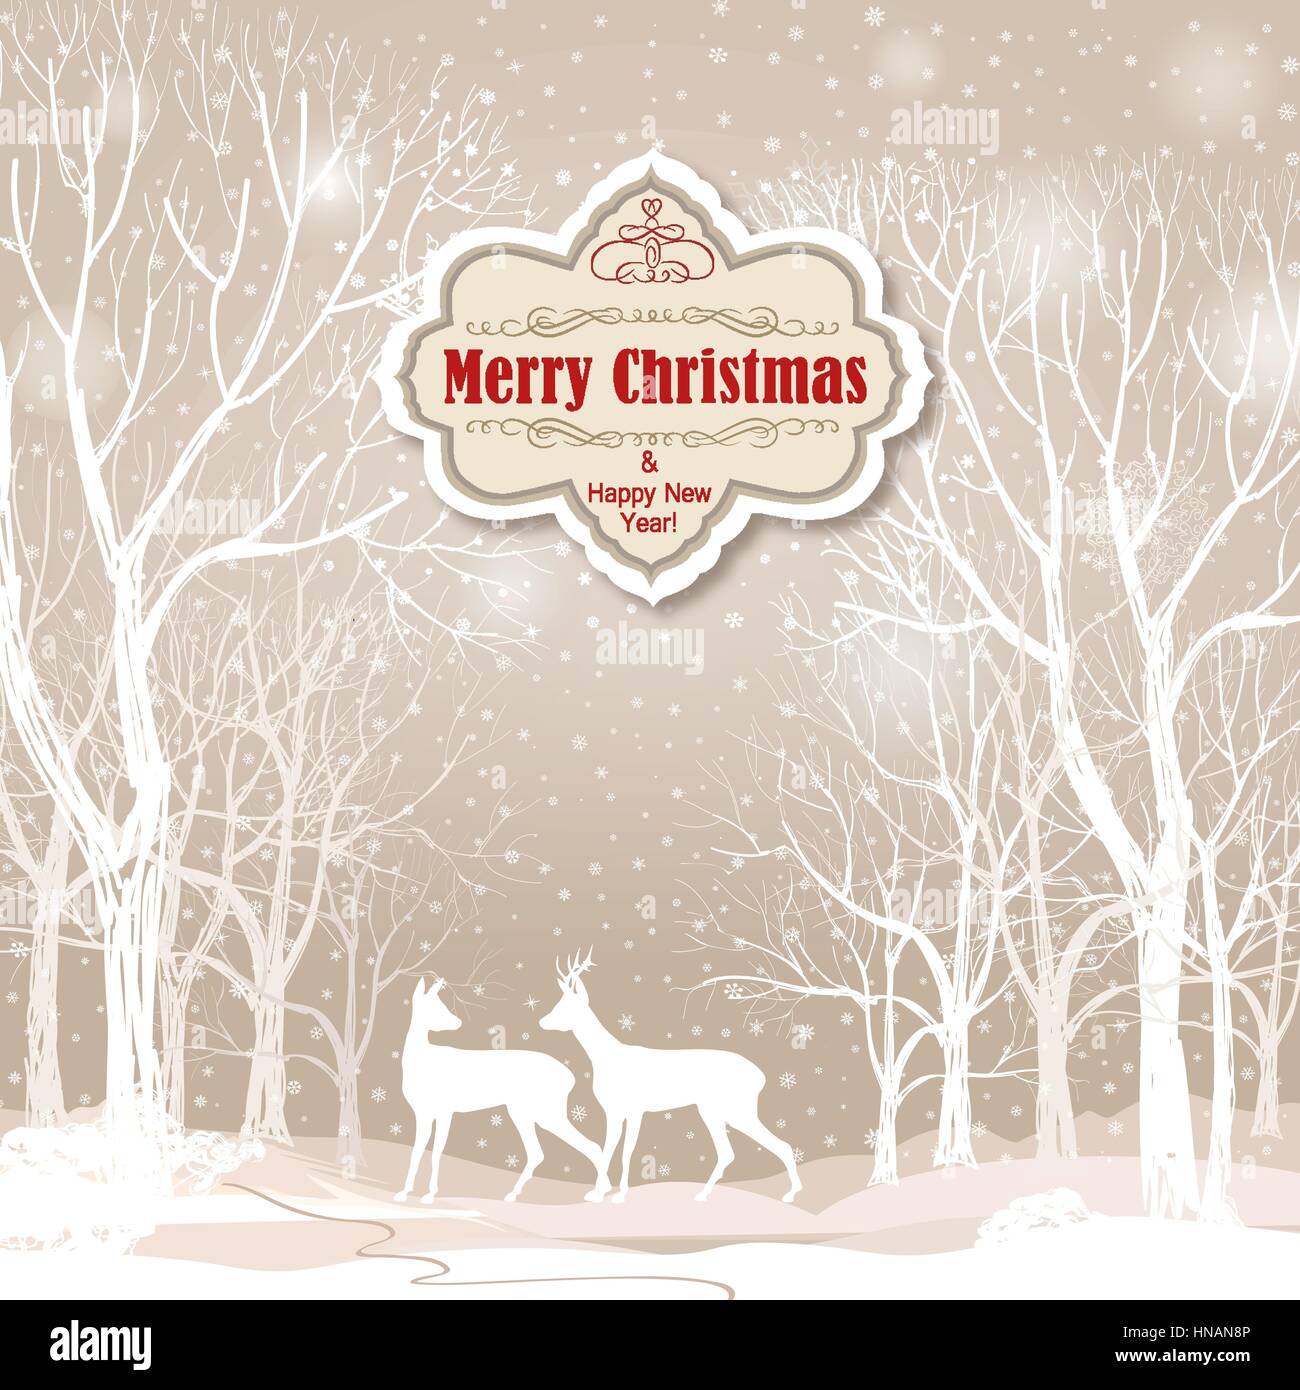 snow winter landscape with two deers merry christmas background with HNAN8P